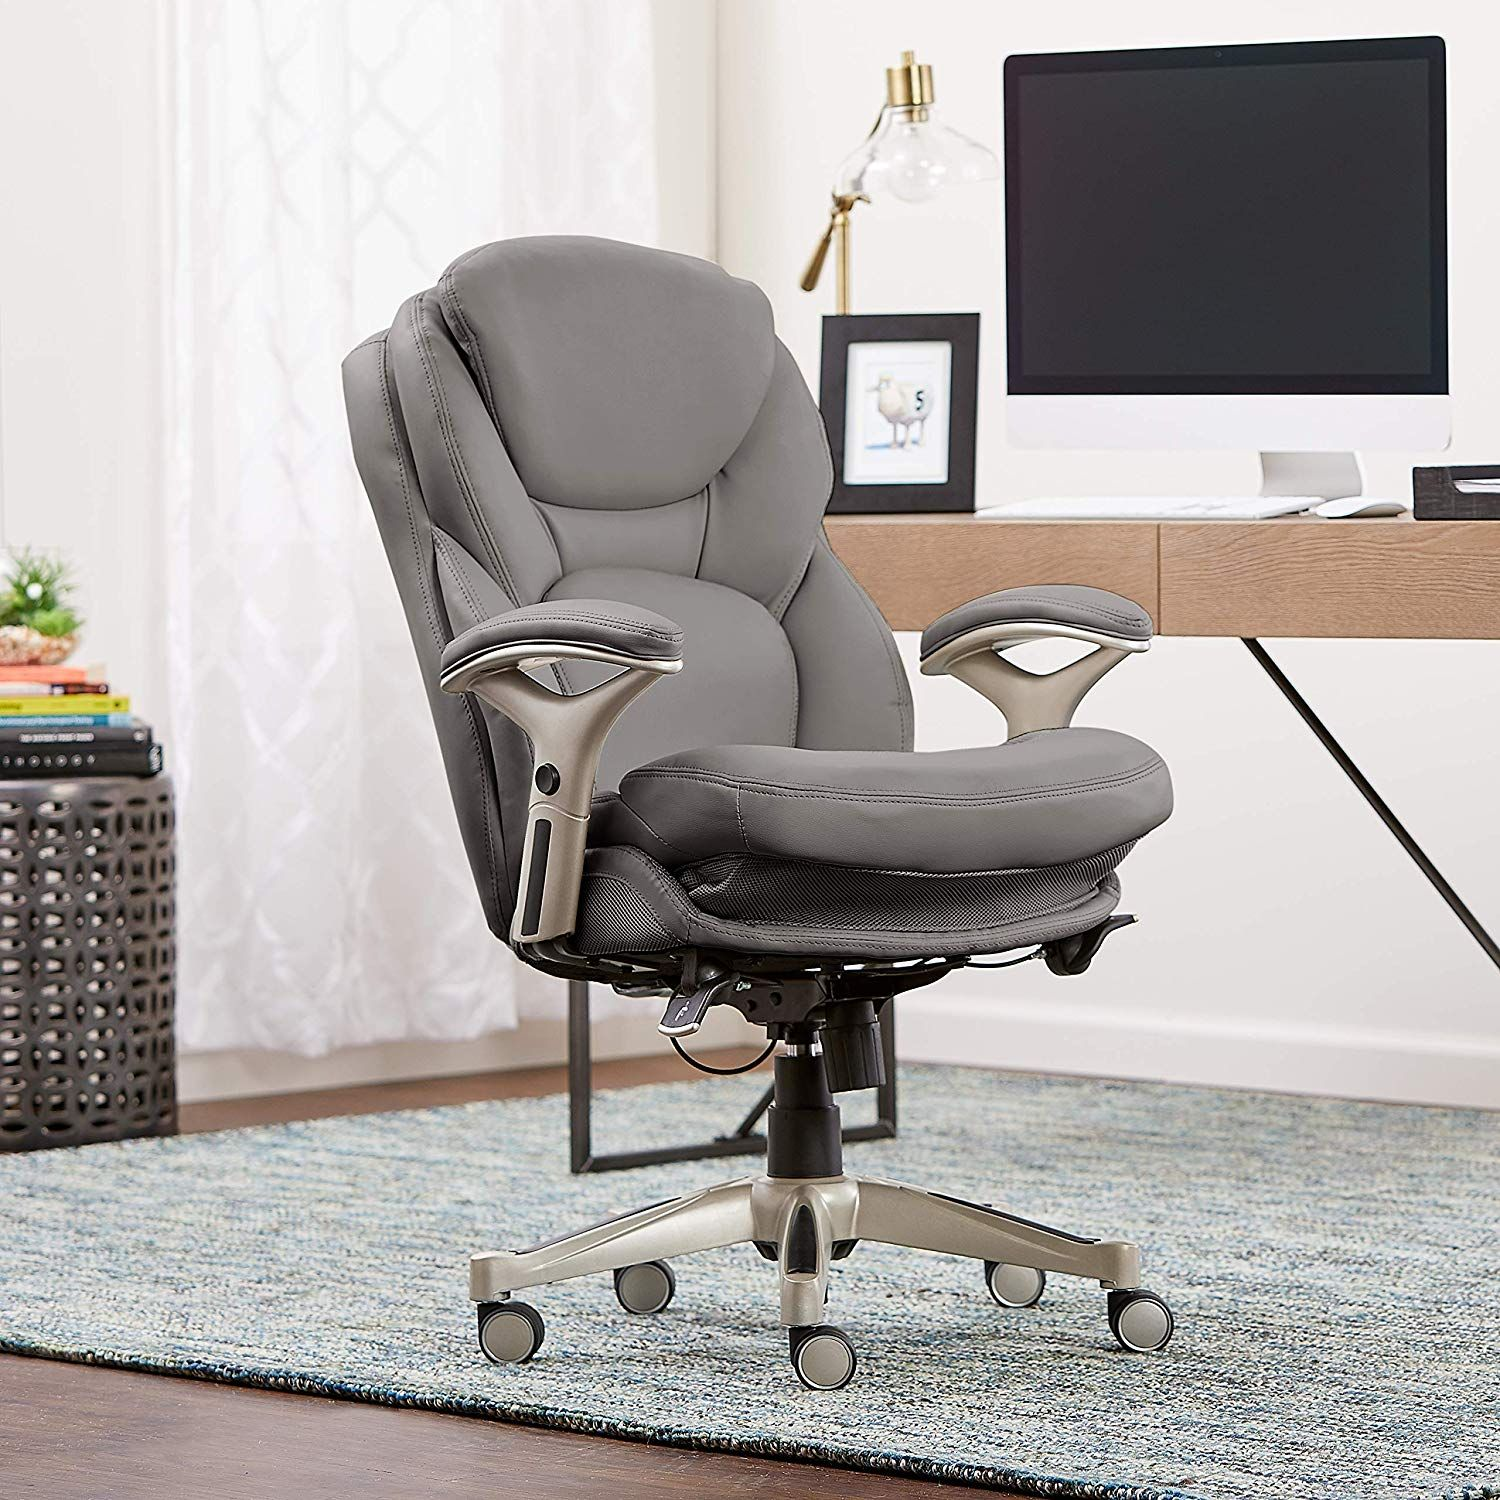 Amazon.com: Serta Works Ergonomic Executive Office Chair with Back